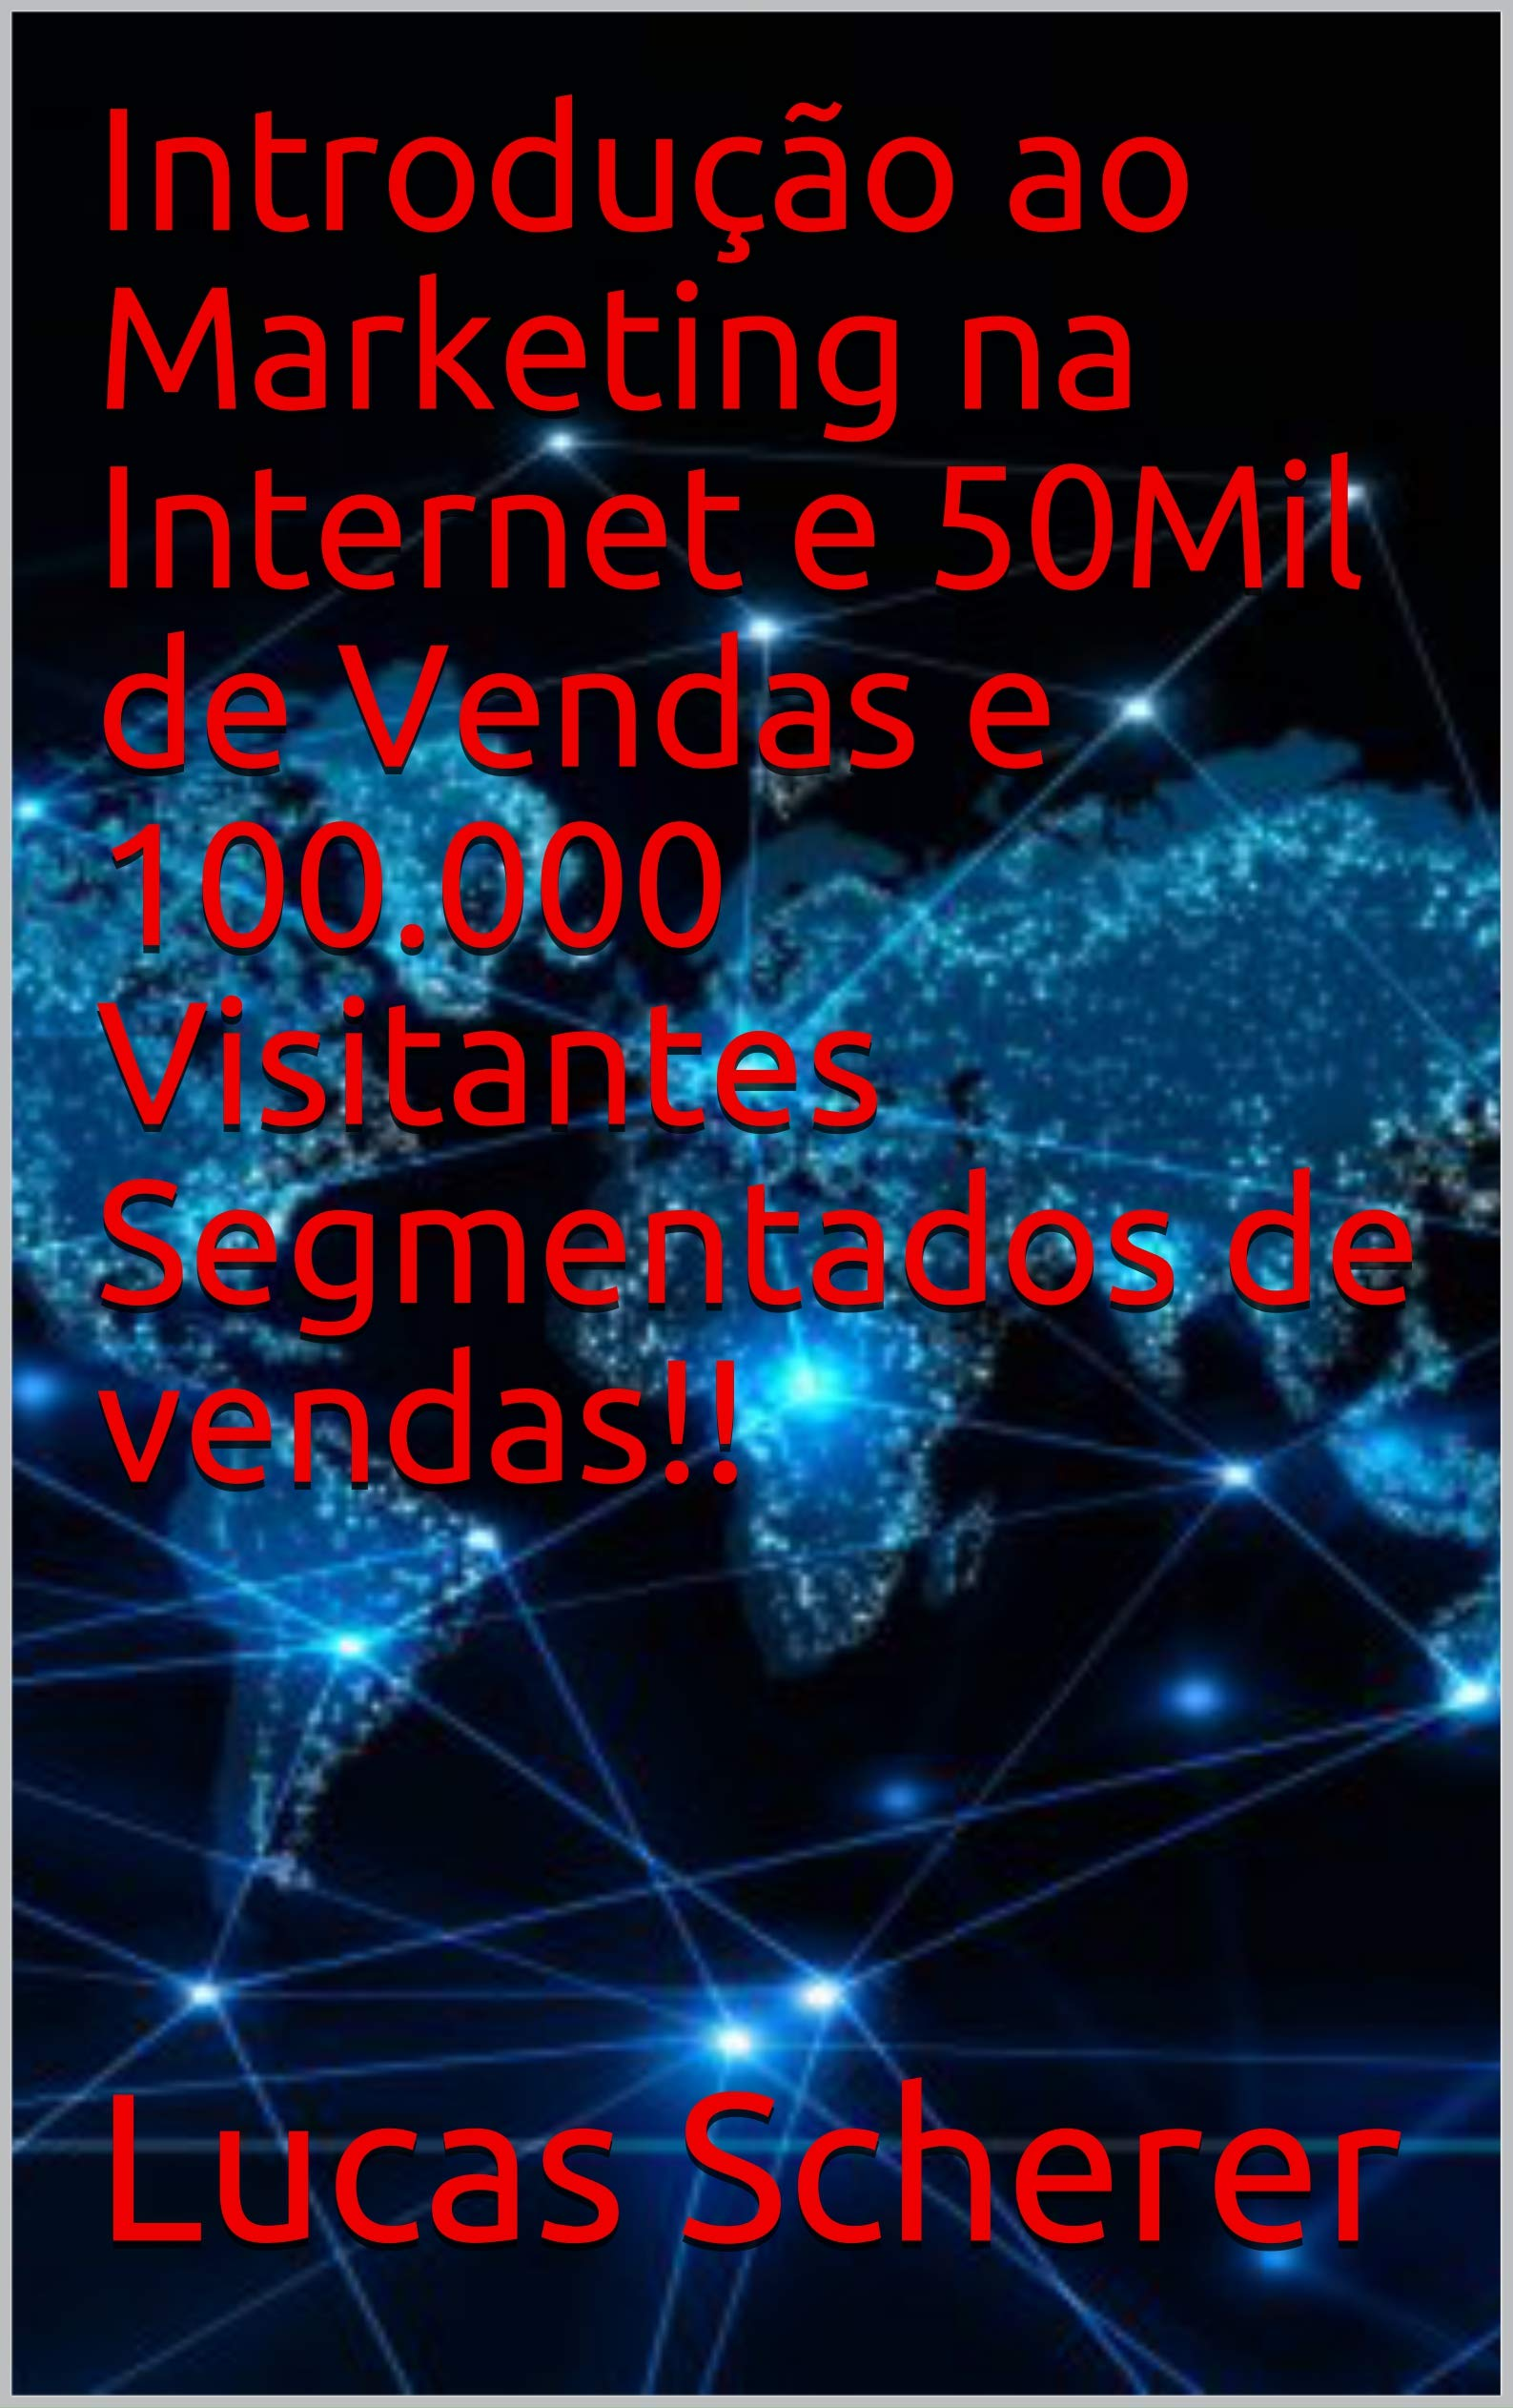 Introdução ao Marketing na Internet e 50Mil de Vendas e 100.000 Visitantes Segmentados de vendas!! (Portuguese Edition)